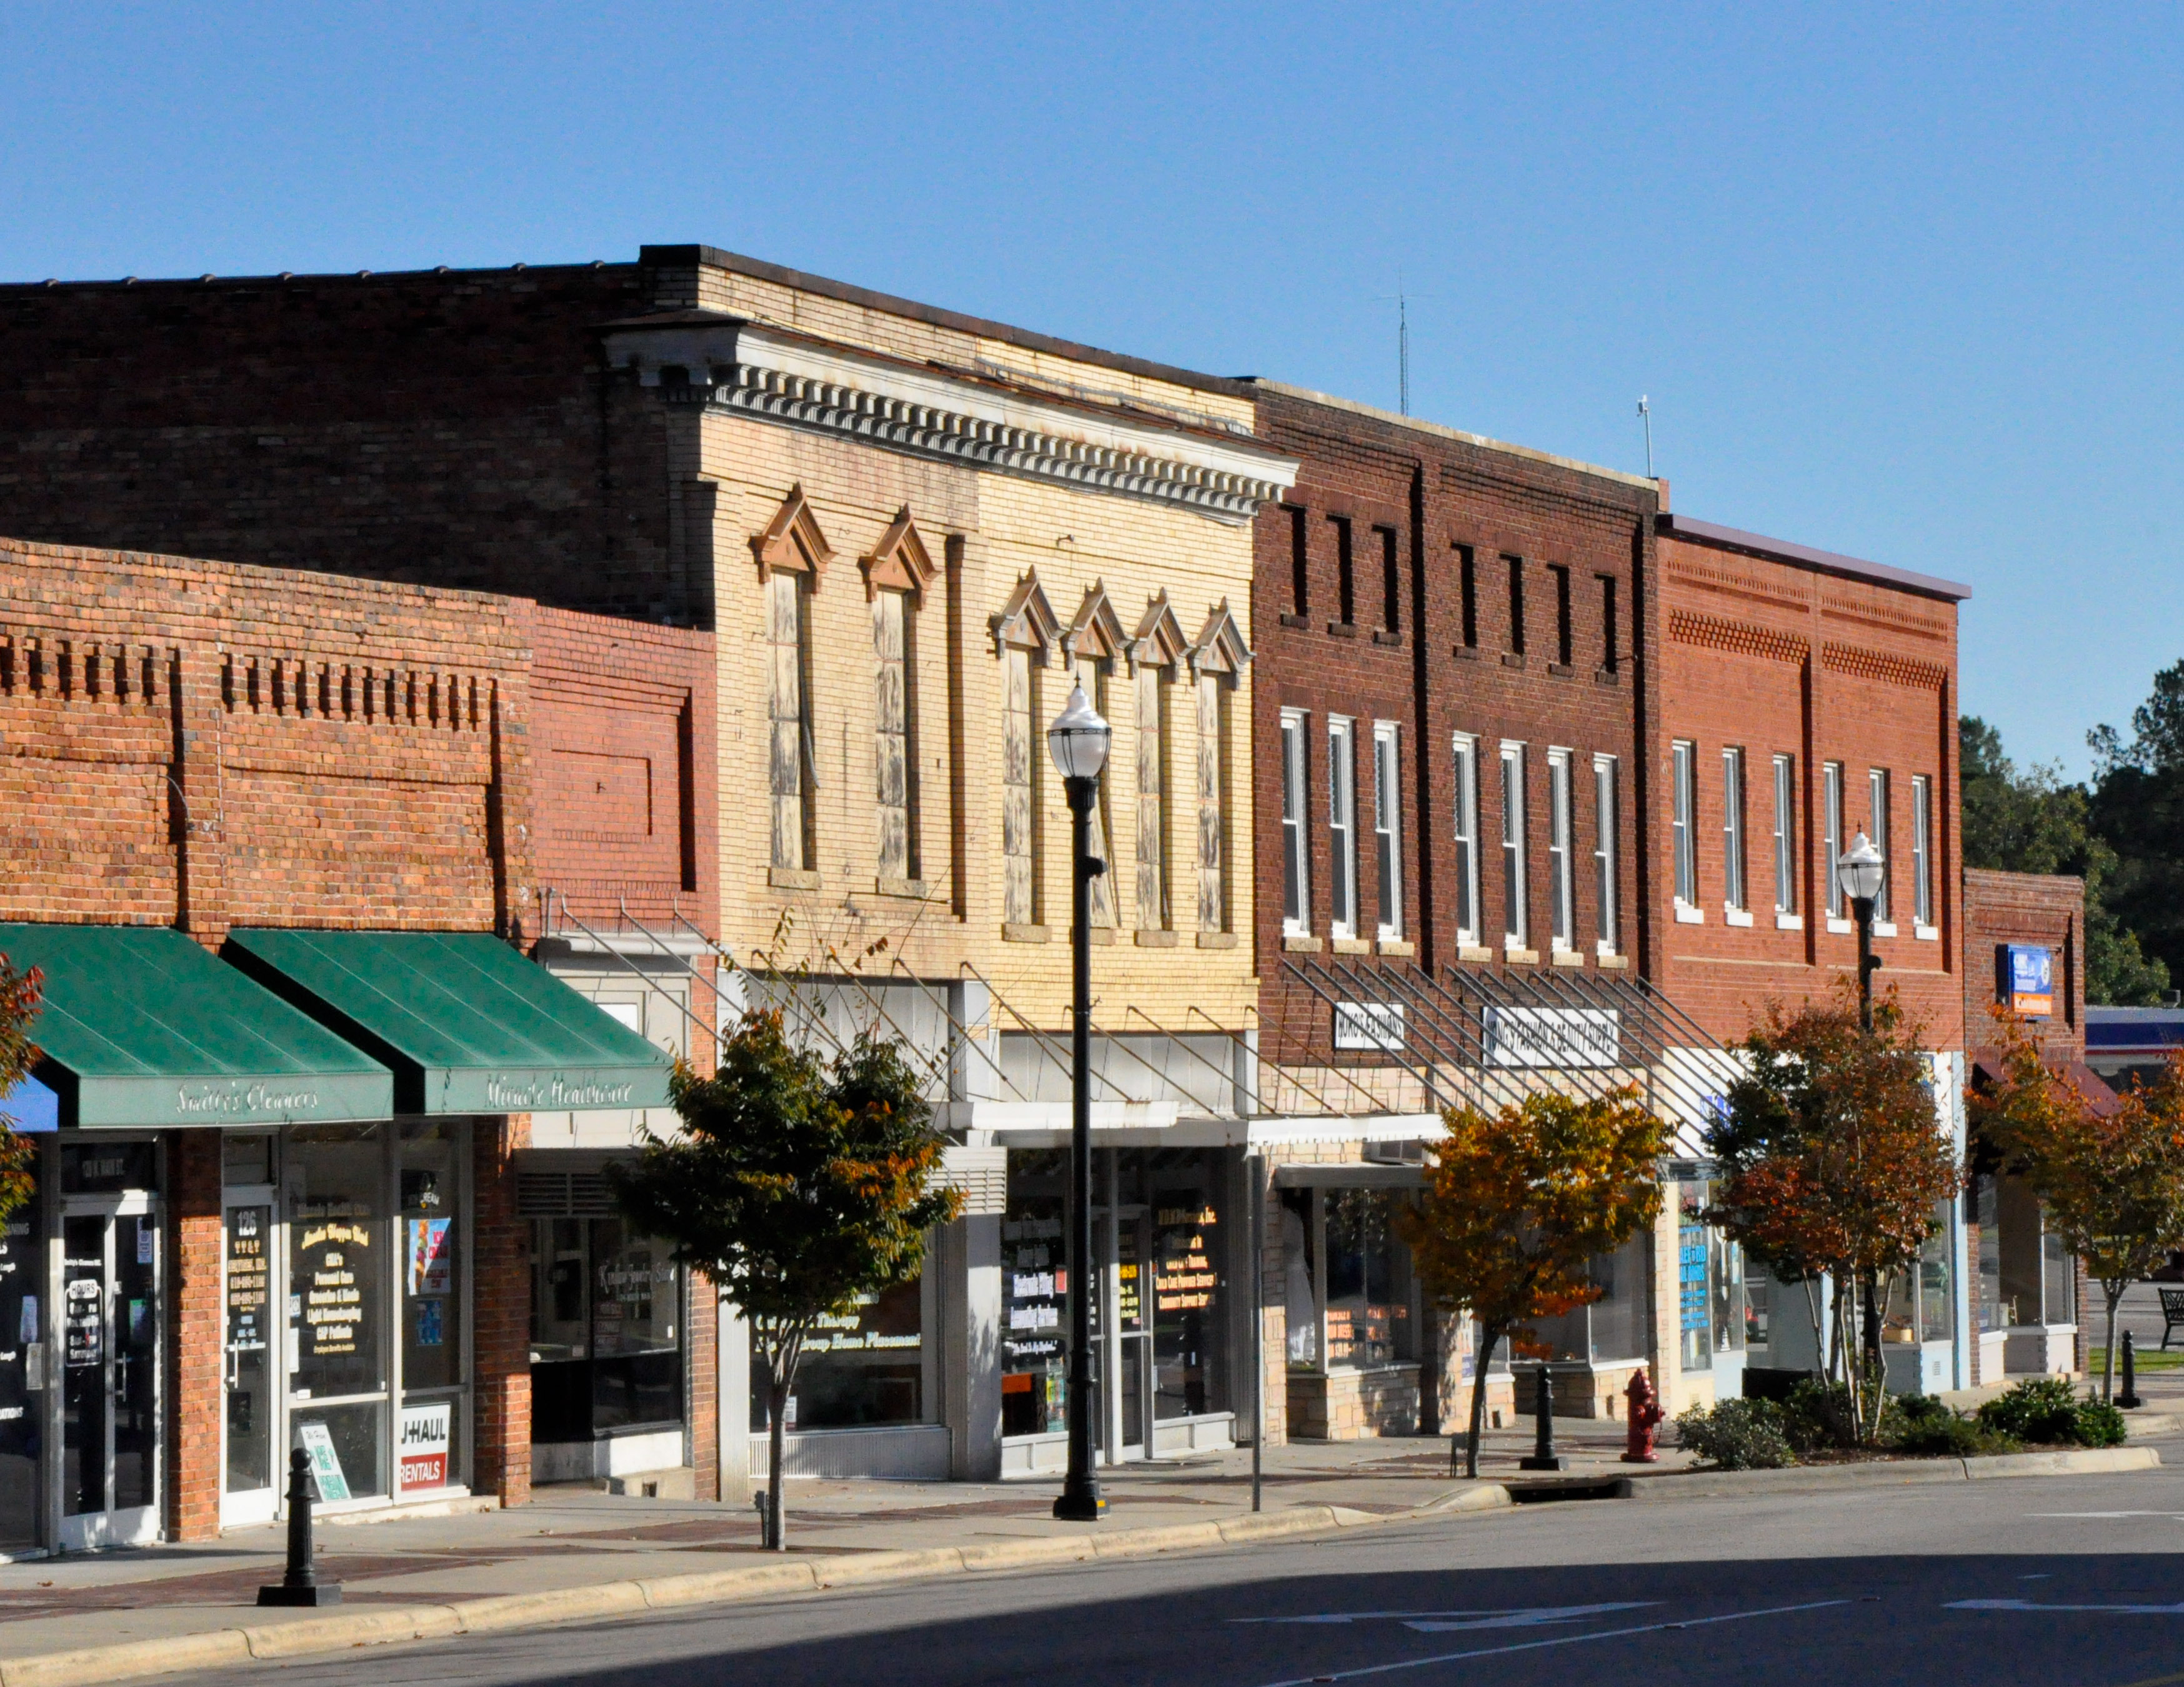 Downtown Raeford